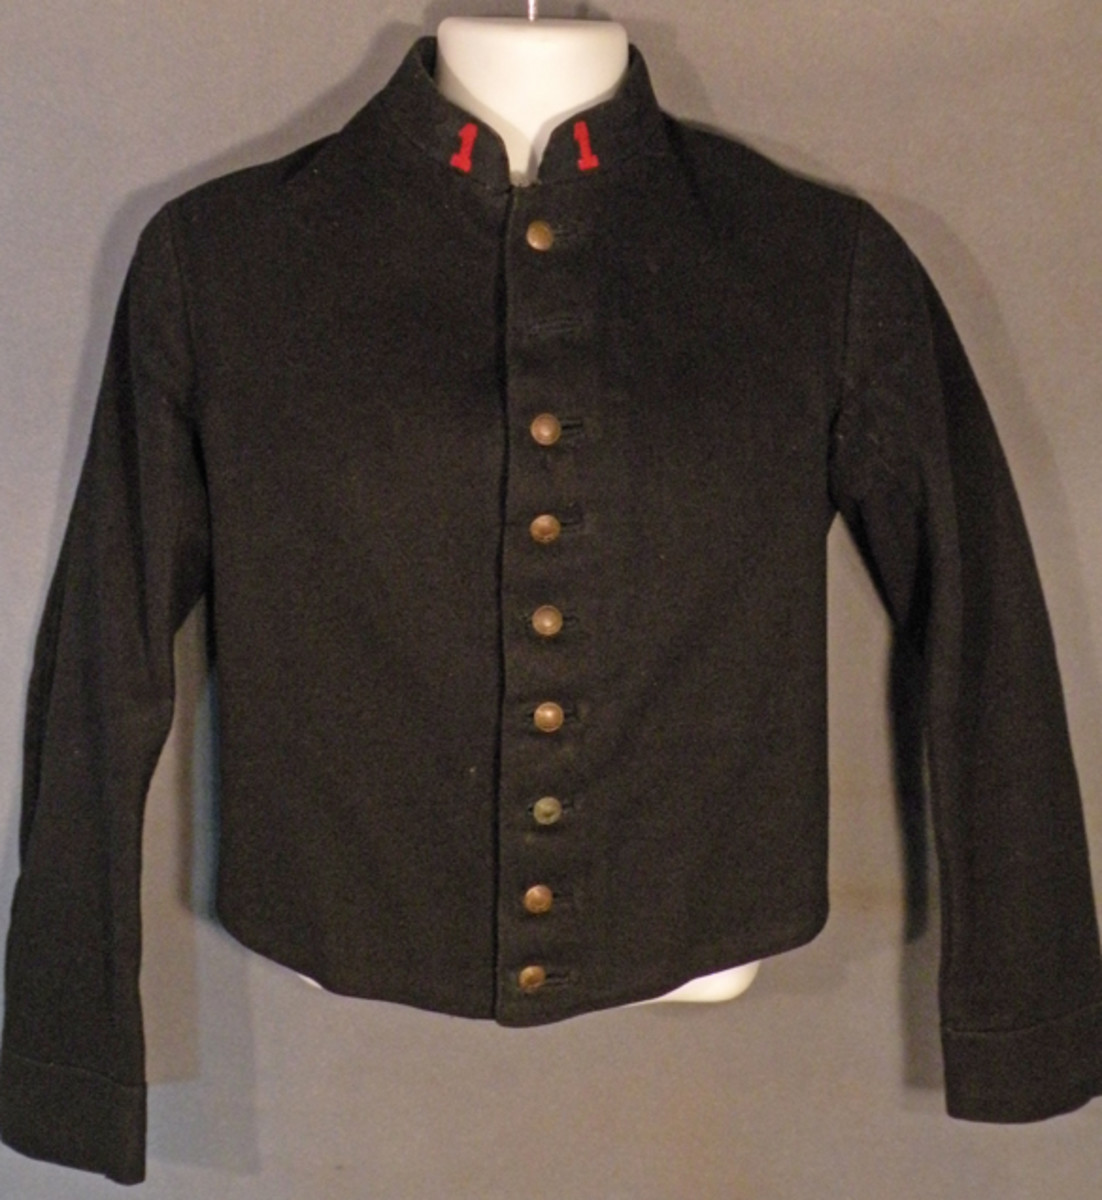 Model 1870 French enlisted tunic with numbered collar insignia for the 1st Marching Regiment, French Foreign Legion.